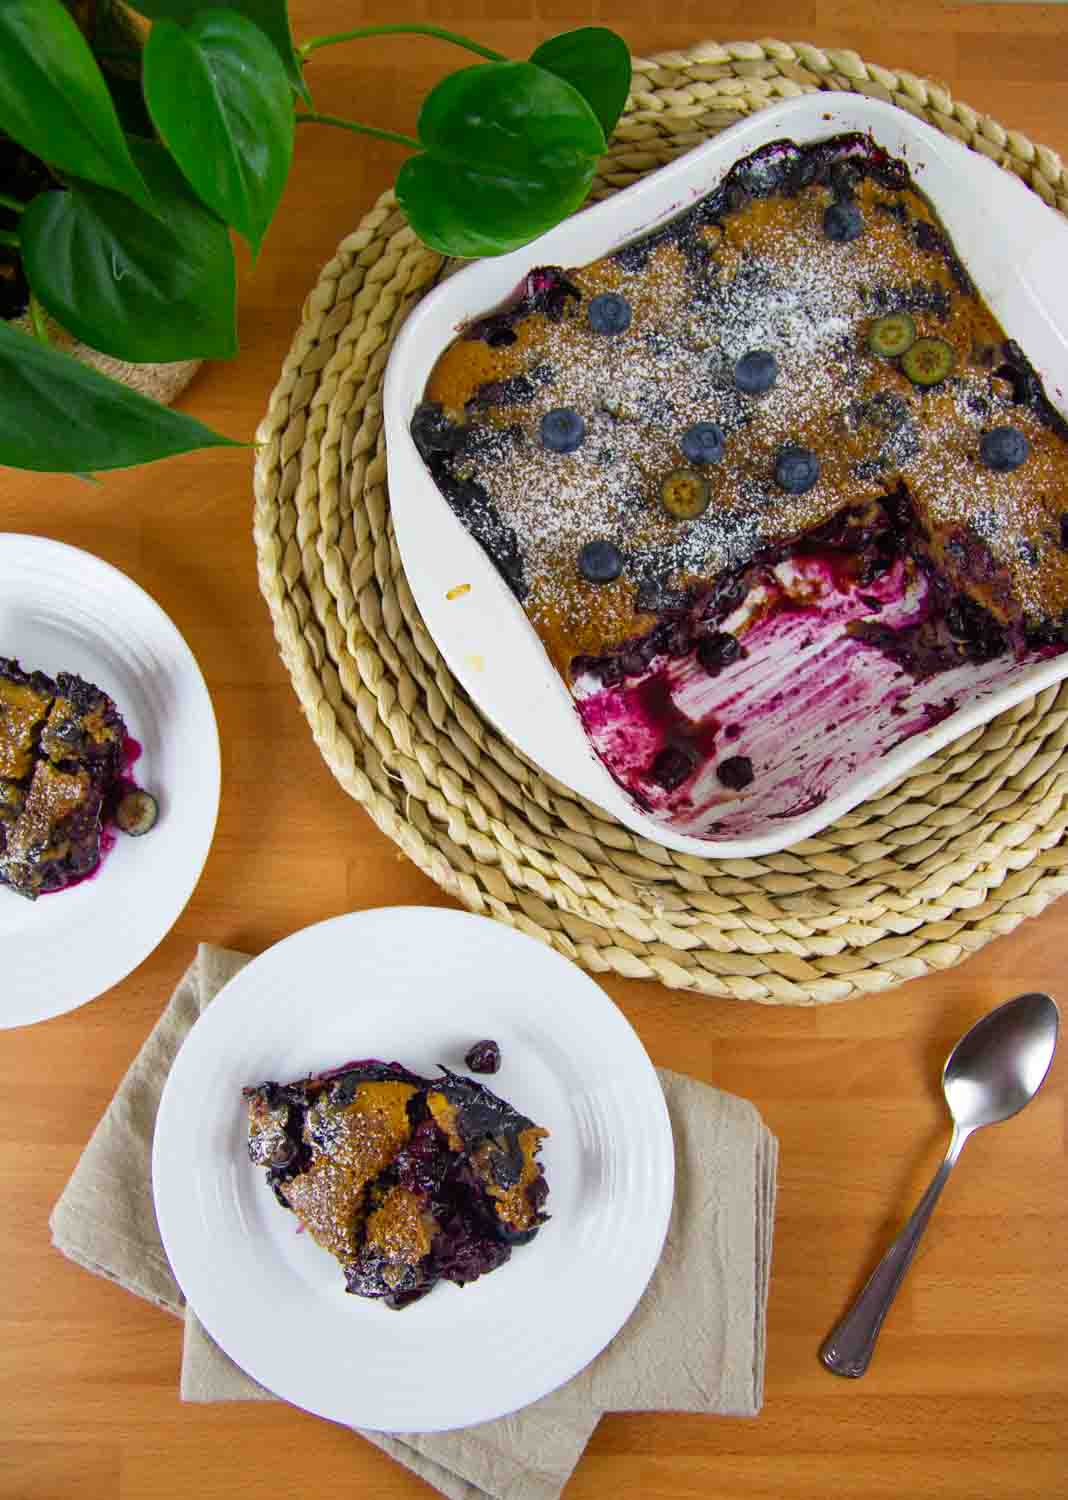 This healthy cobbler recipe is made with a gluten-free oat flour spooned over fresh, juicy blueberries then baked in the oven. It's crazy delicious and the perfect summer dessert.